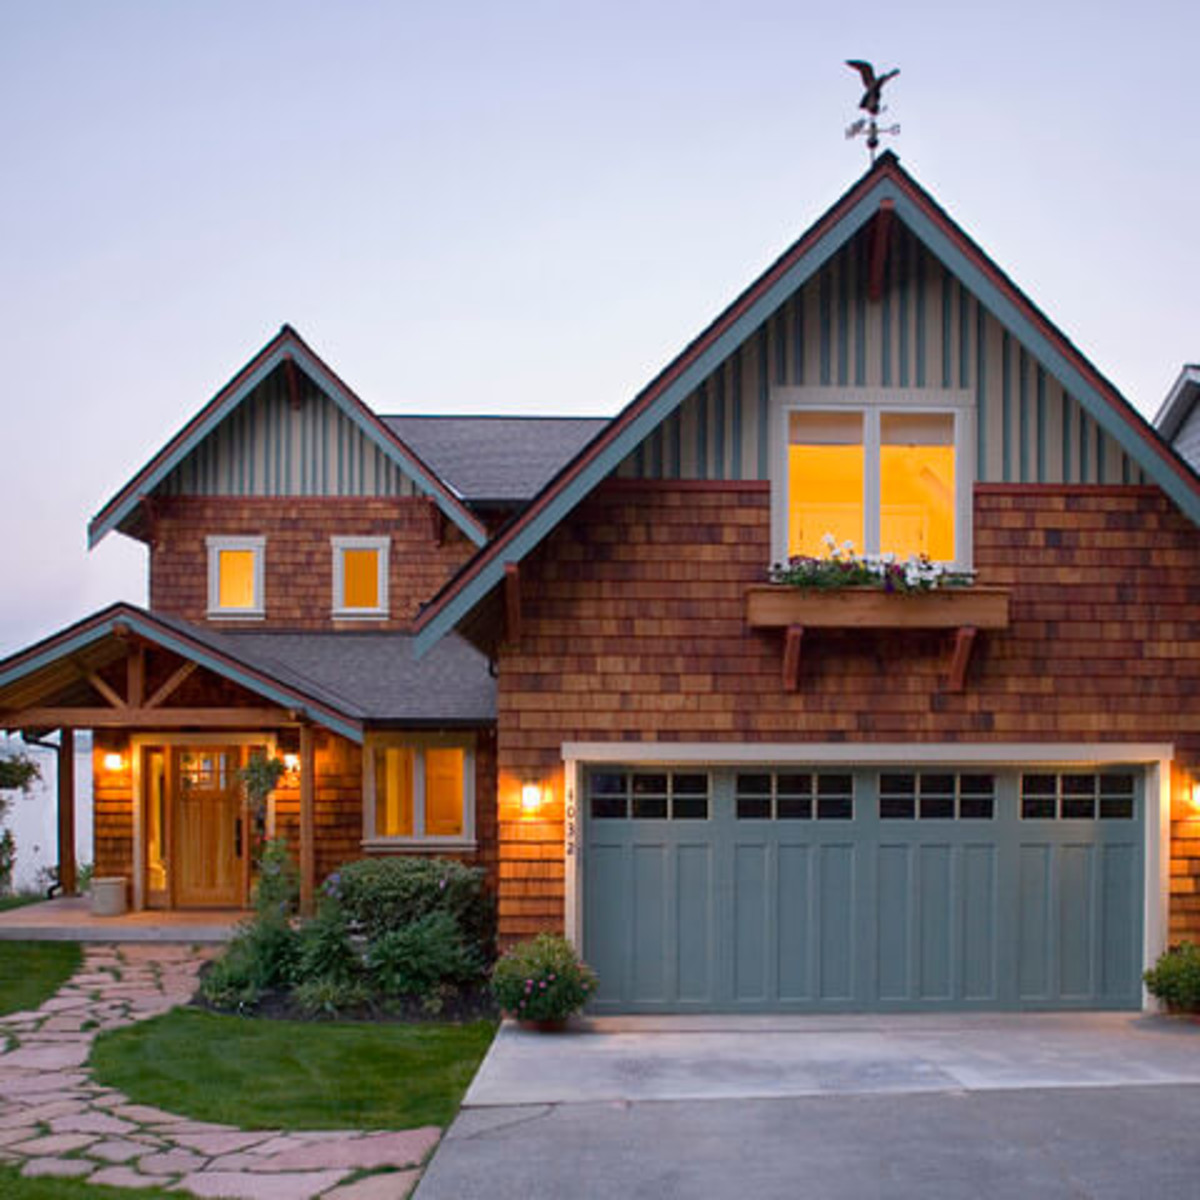 Houzz Home Design Ideas: 9 Design Tips To Add Rustic Charm To Your Home